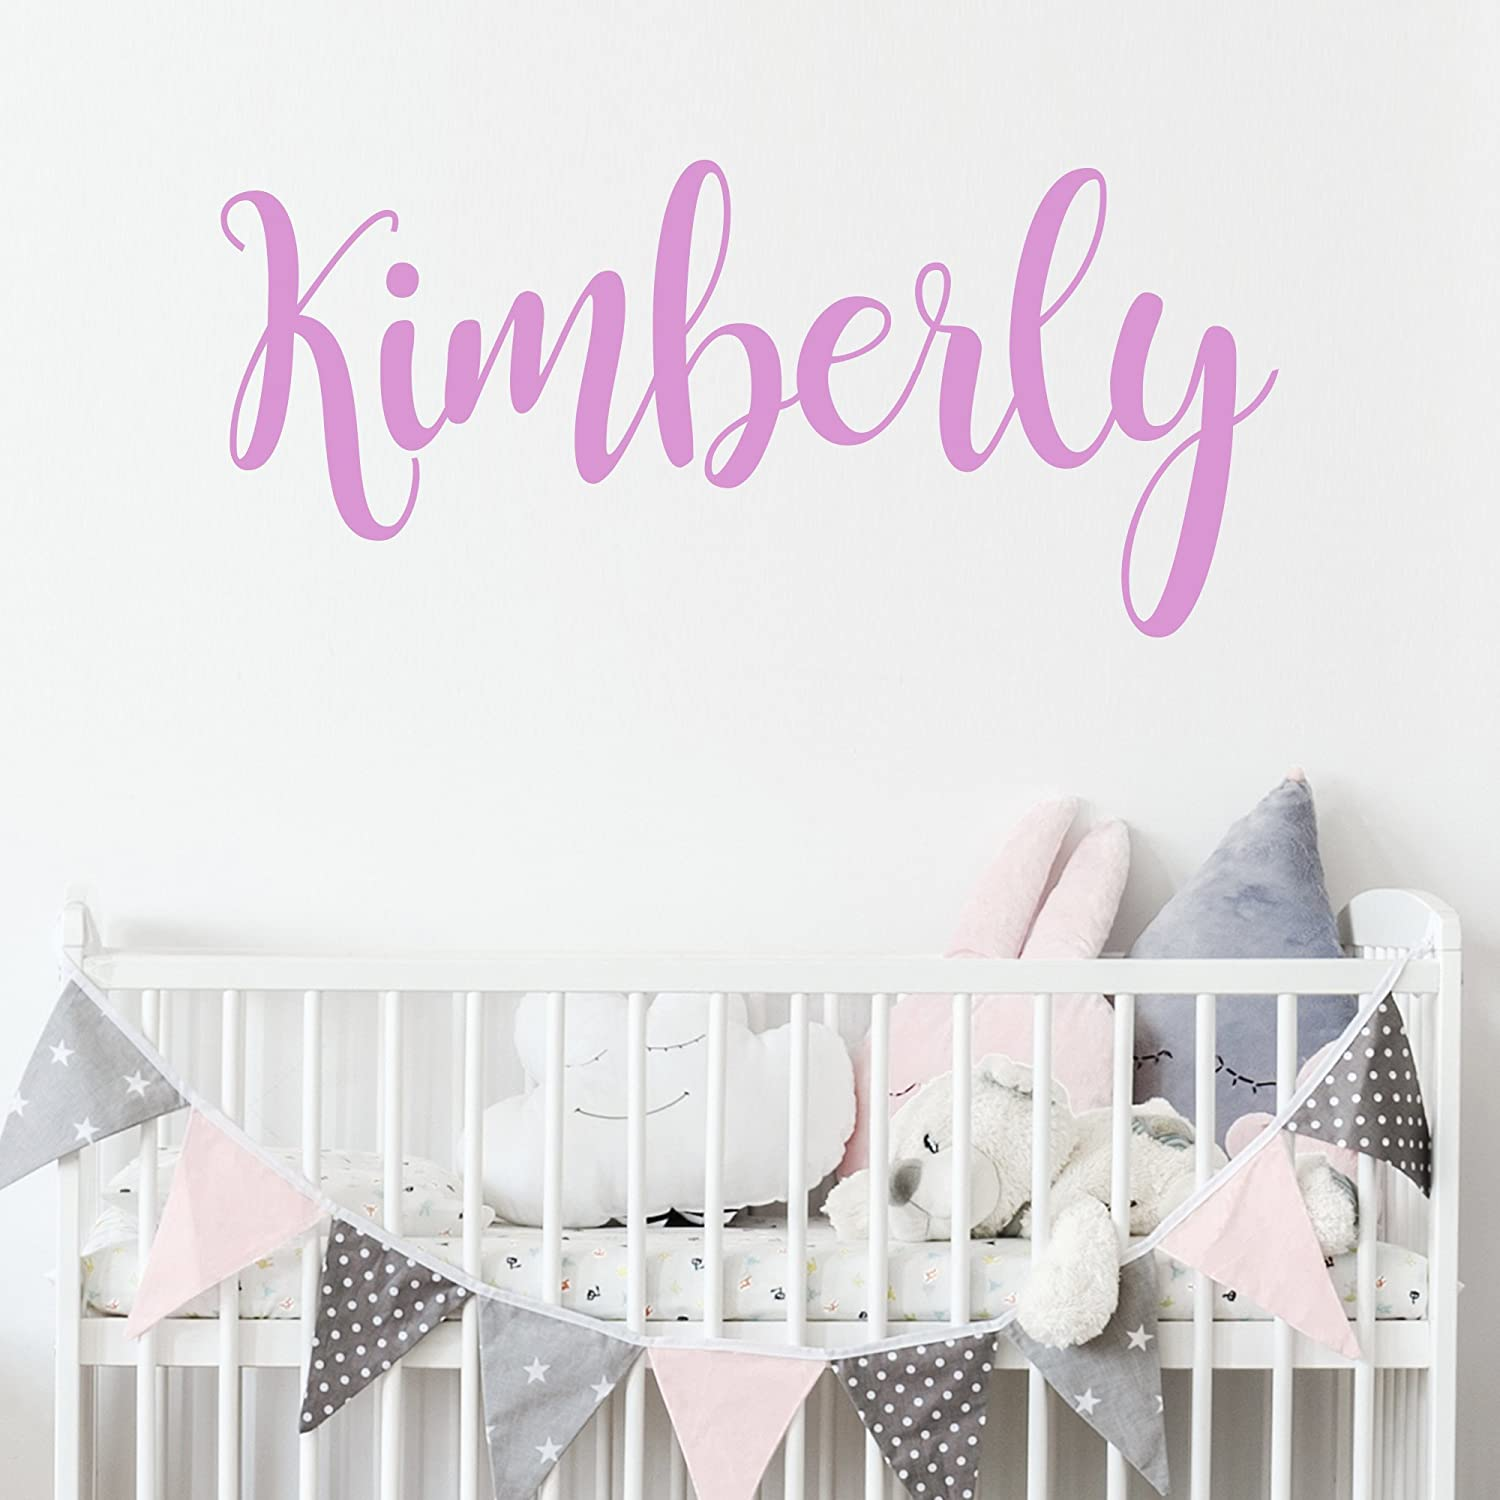 Personalized Custom Name Wall Decal for Baby Girl Nursery Room - Anti-Glare Large Matte Vinyl Monogram Lettering - Safe on Walls & Paint - Made in USA - Handmade to Order Decals for the Wall custom_name_girl